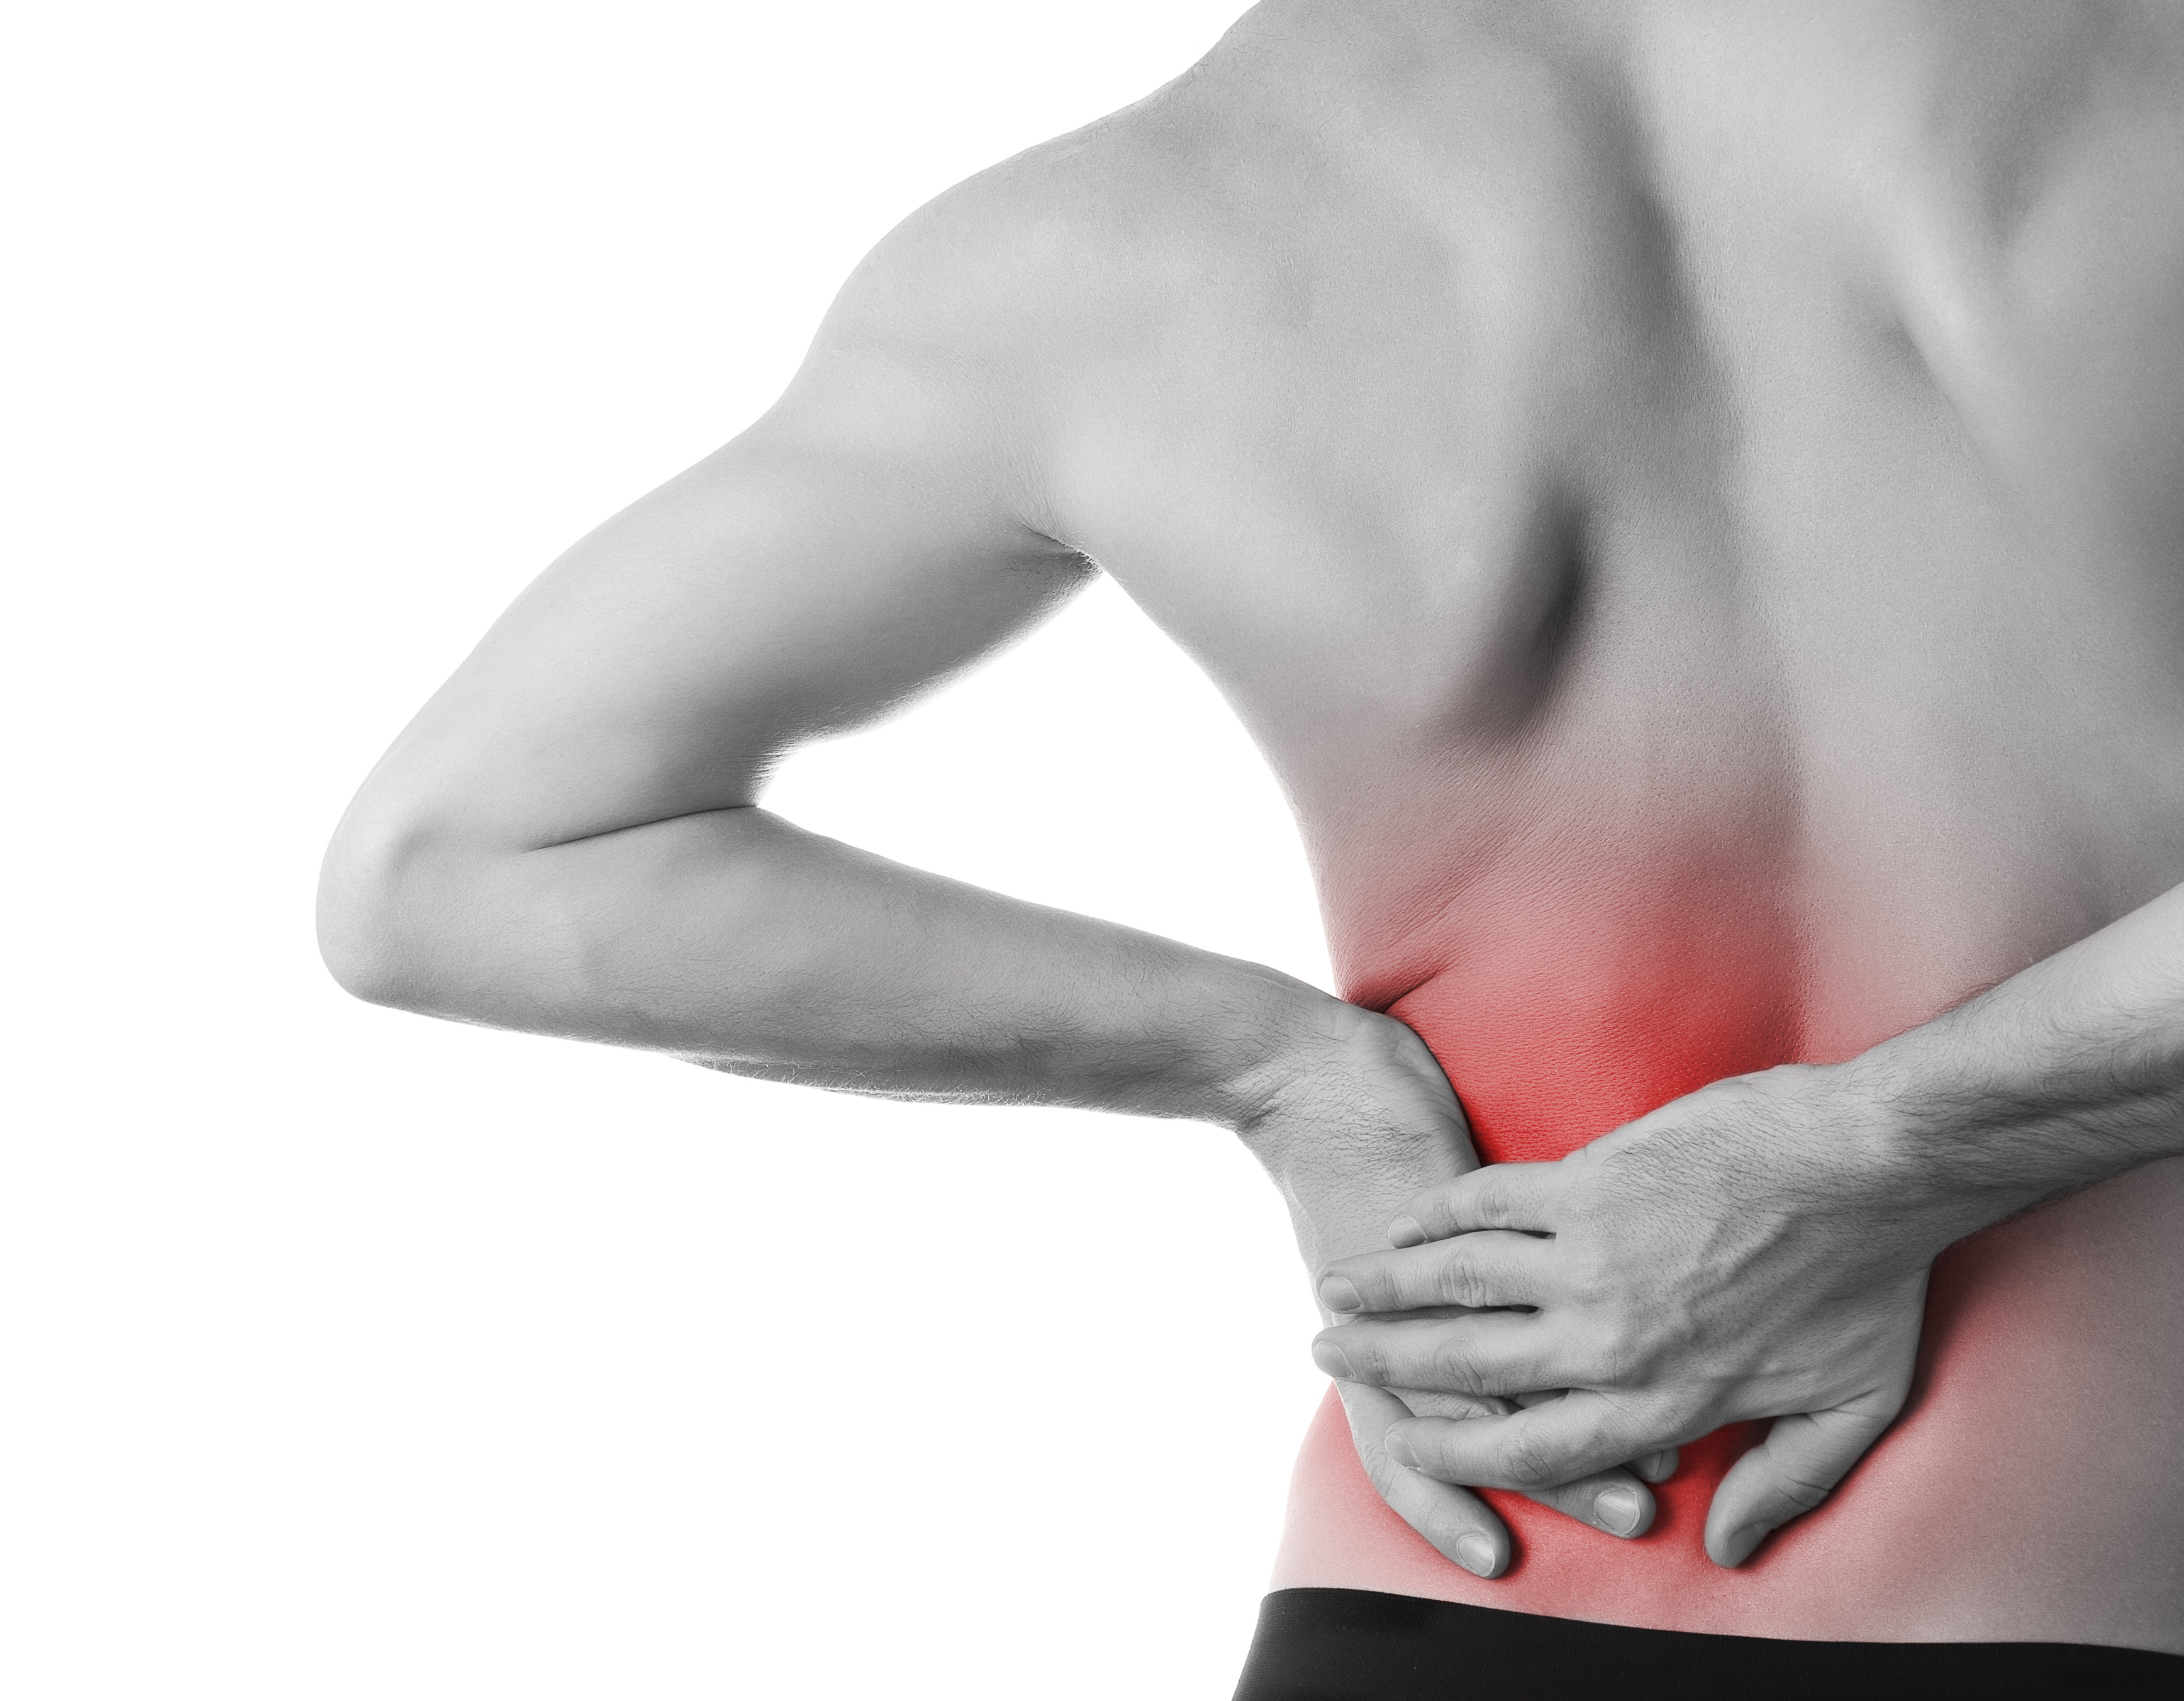 Rear view of a young man holding his back in pain, isolated on white background, monochrome photo with red as a symbol for the hardening